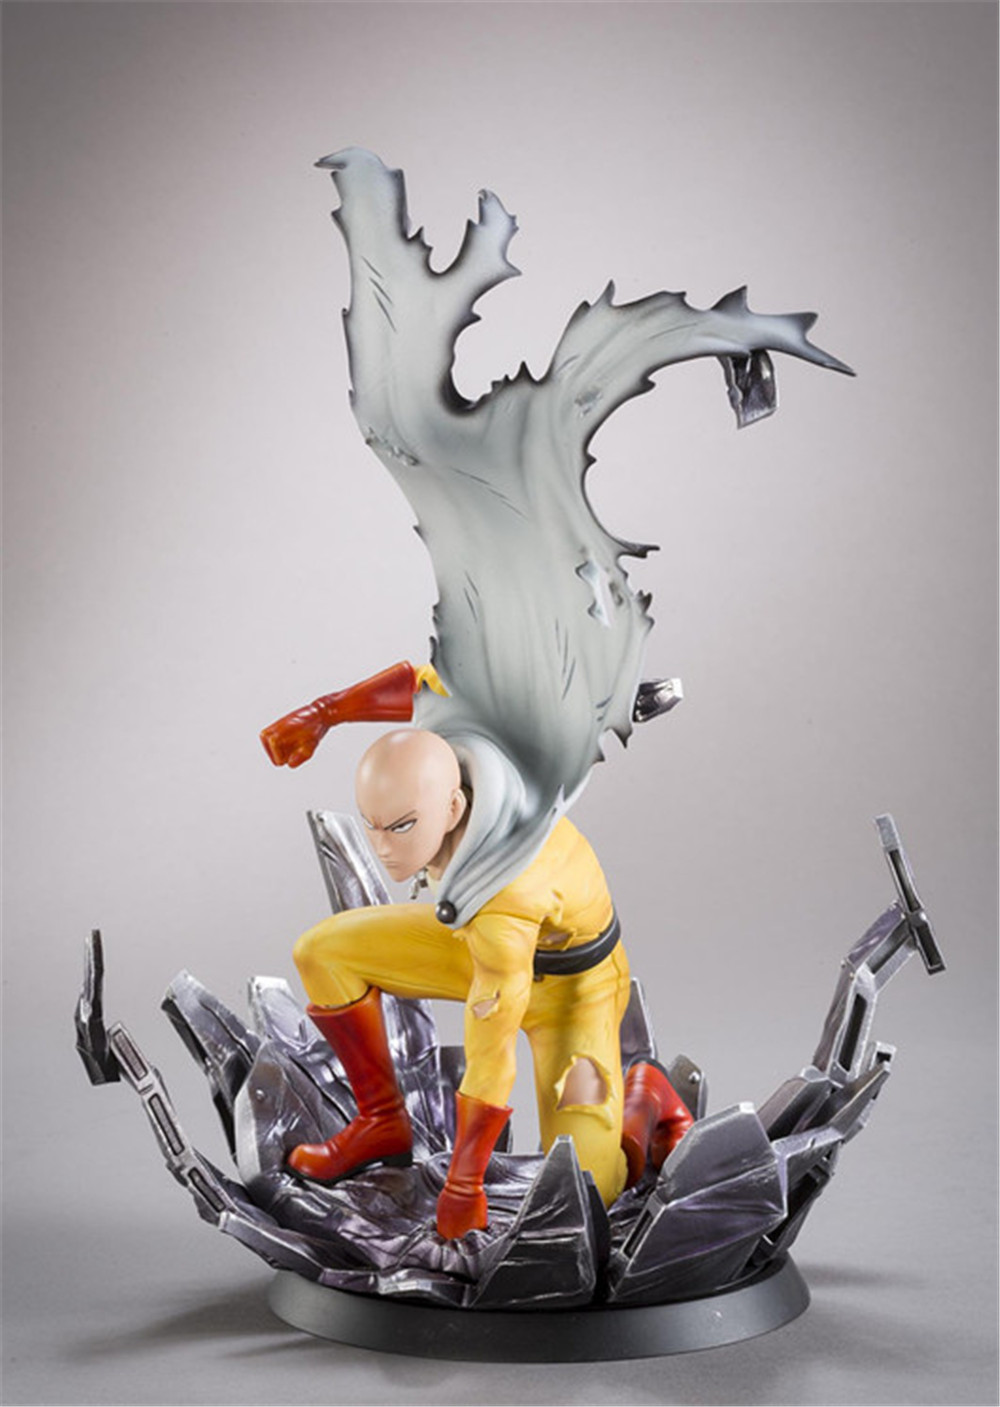 Anime One punch man Saitama Action Figure toys Collectible Model PVC Kid Toys Christmas Gift for Anime Lovers 24cm N088 the flash man aciton figure toys flash man action figures collectible pvc model toy gift for children